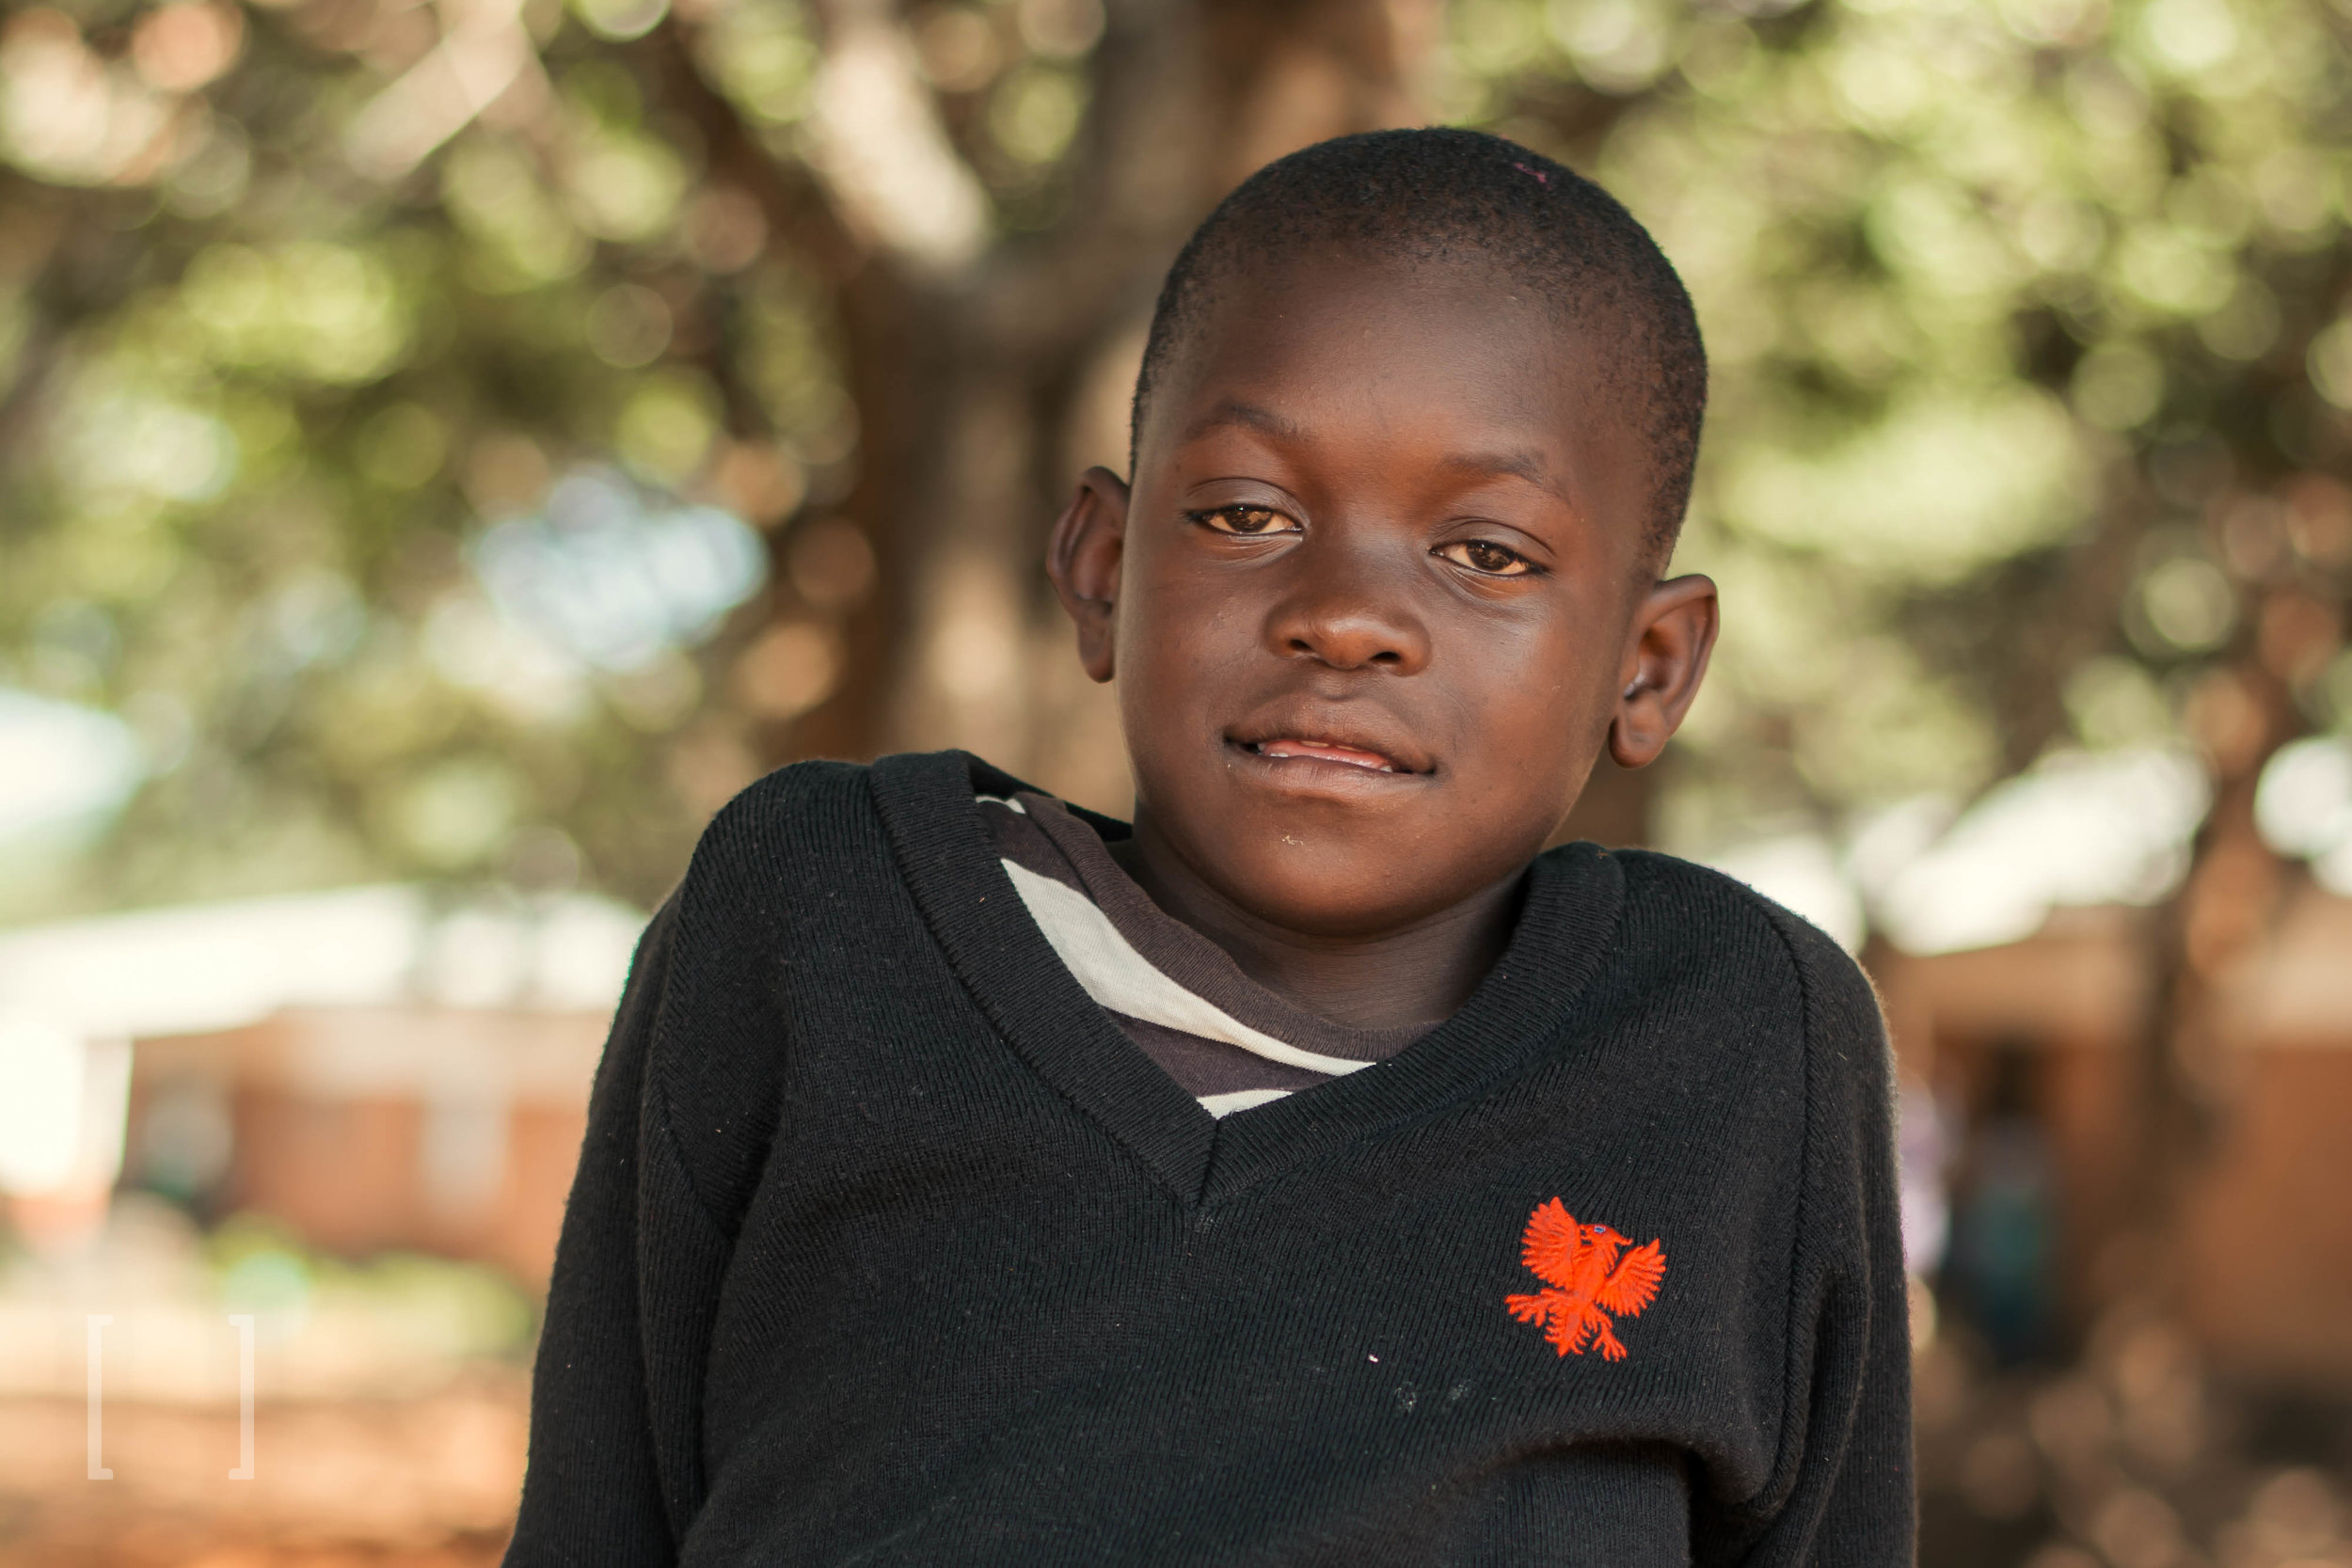 Thokozani - Thokozani lost her mother when she was 3 months old. Her grandmother, who was caring for her as an infant, also passed away. She came to Home of Hope and has been doing well. Thokozai excels in Mathematics. She likes playing soccer in her free time. Join her support system!